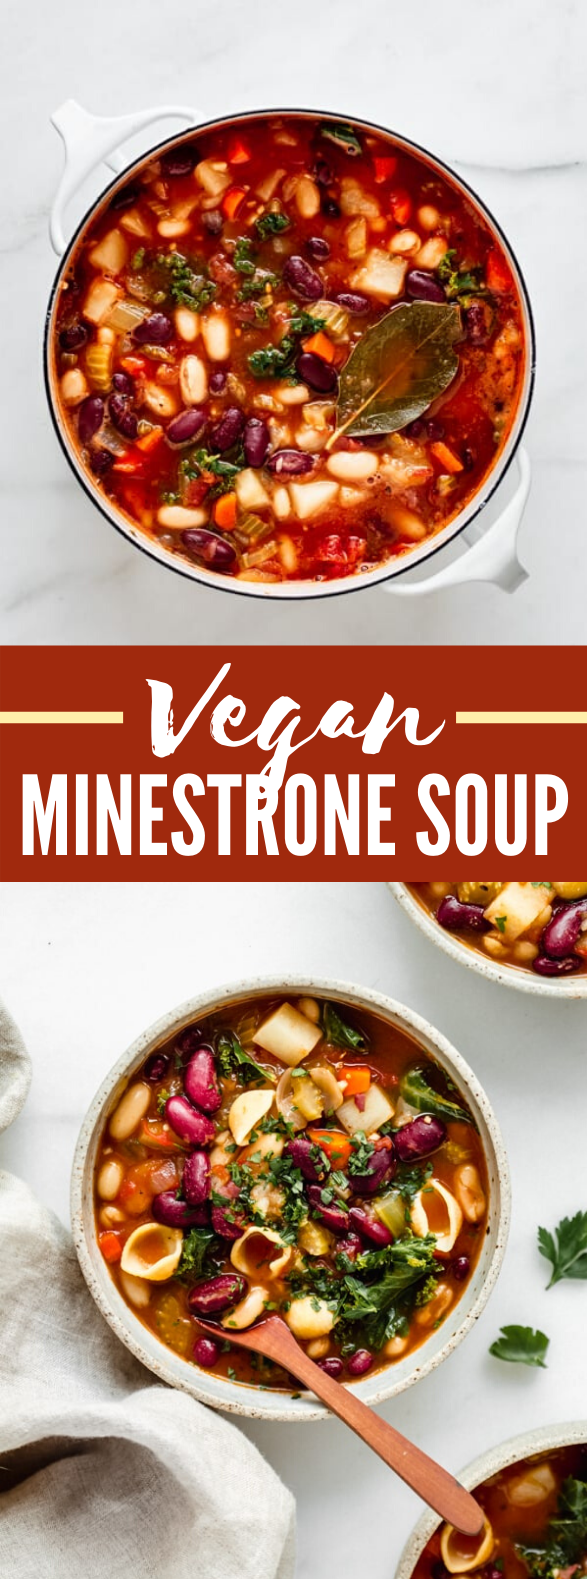 VEGAN MINESTRONE SOUP #vegetarian #lunch